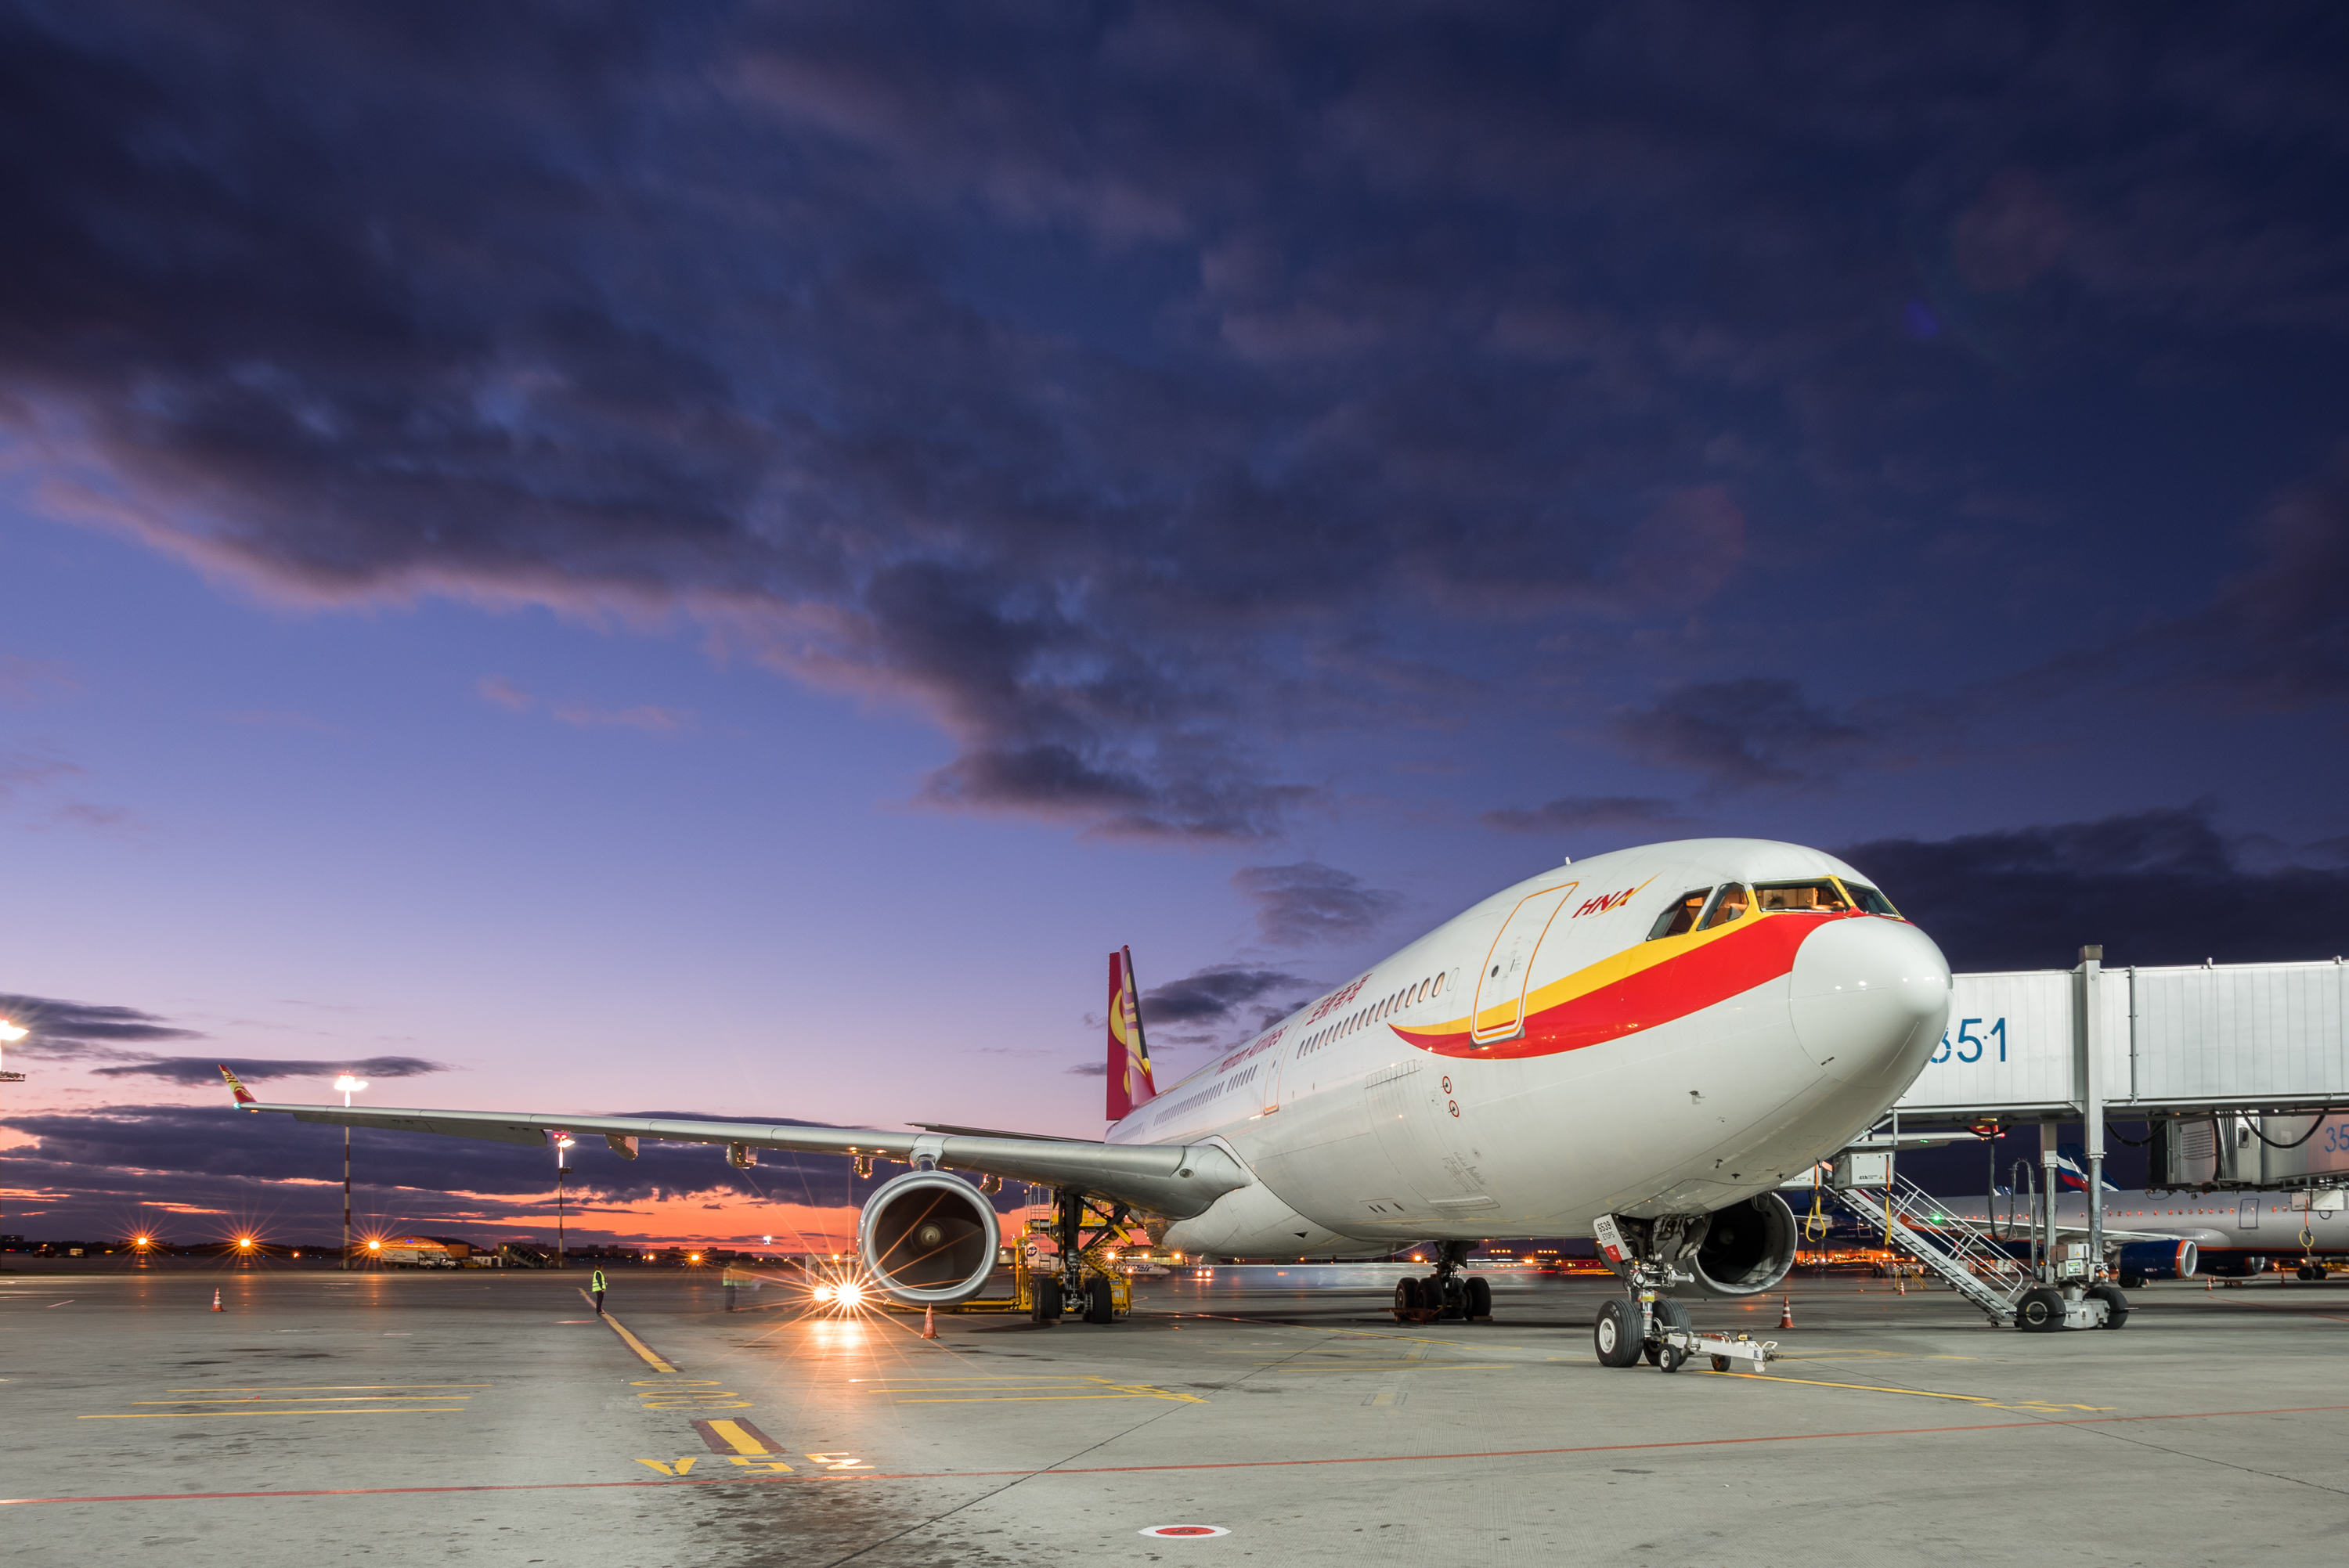 The Airbus A330-300 Hainan Airlines at Sheremetyevo airport in terminal E